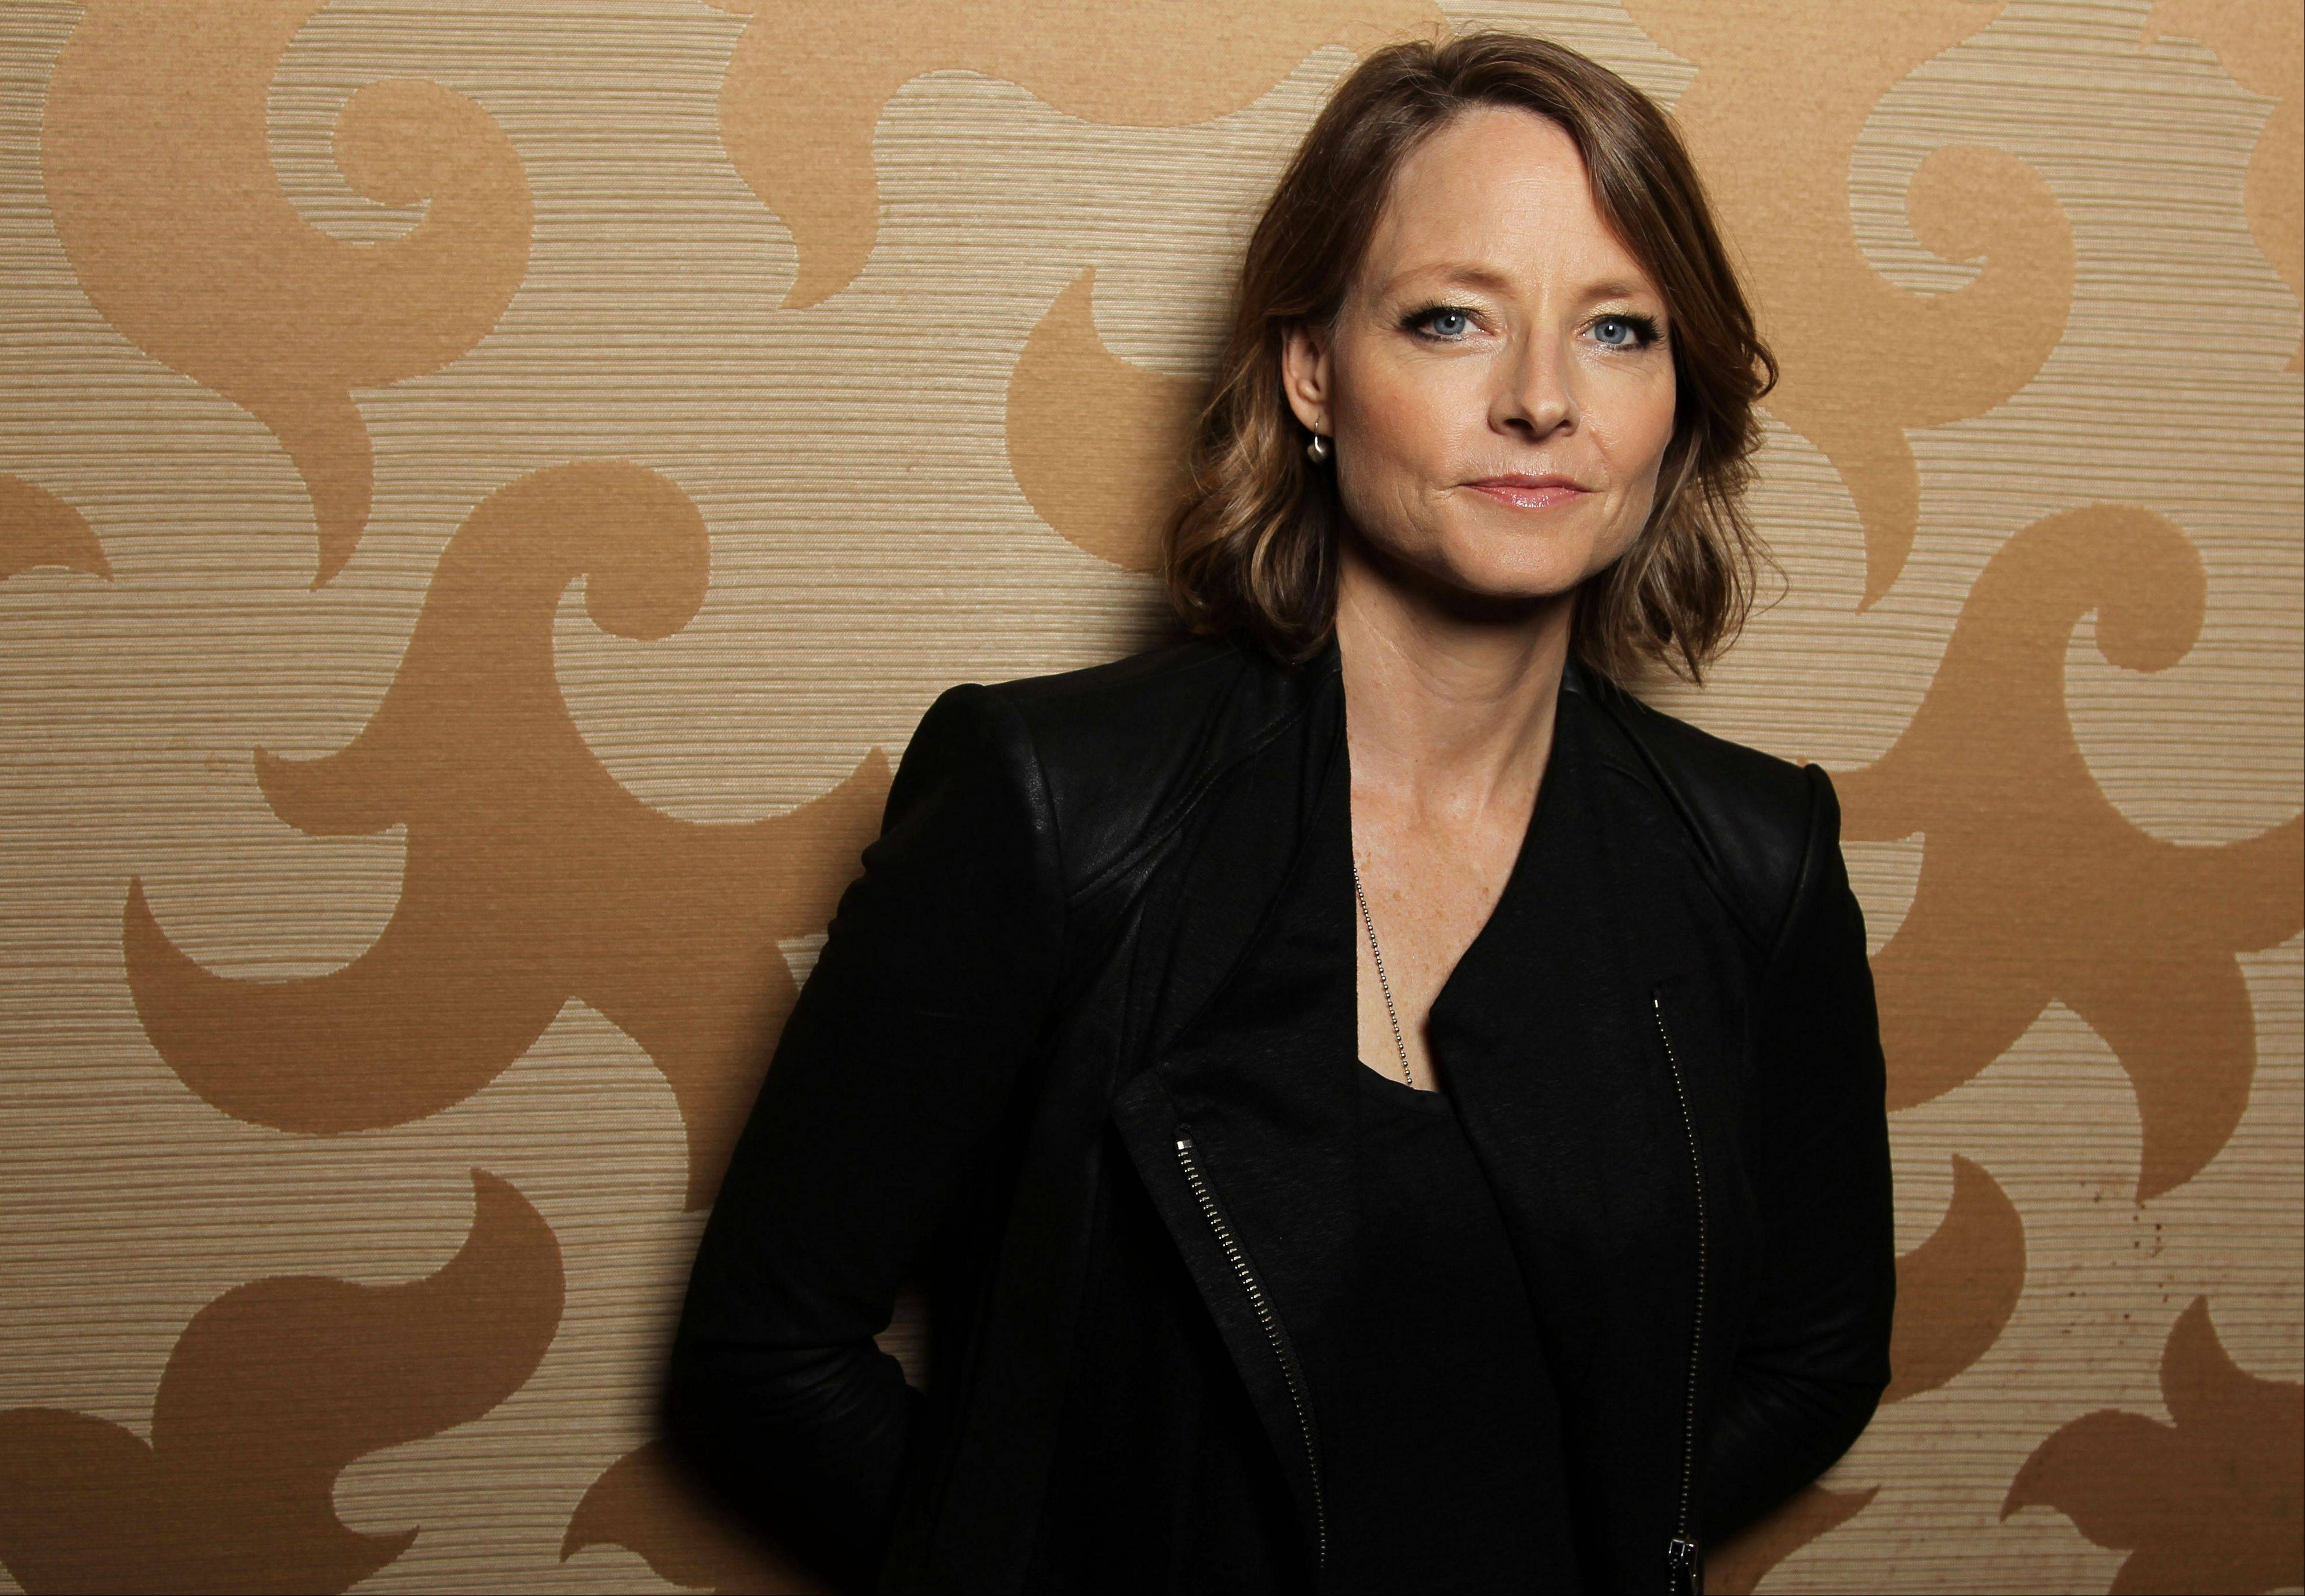 Actress, Jodie Foster is famous for the strong screen persona and versatile talent she's displayed over her 47 years as an actress.